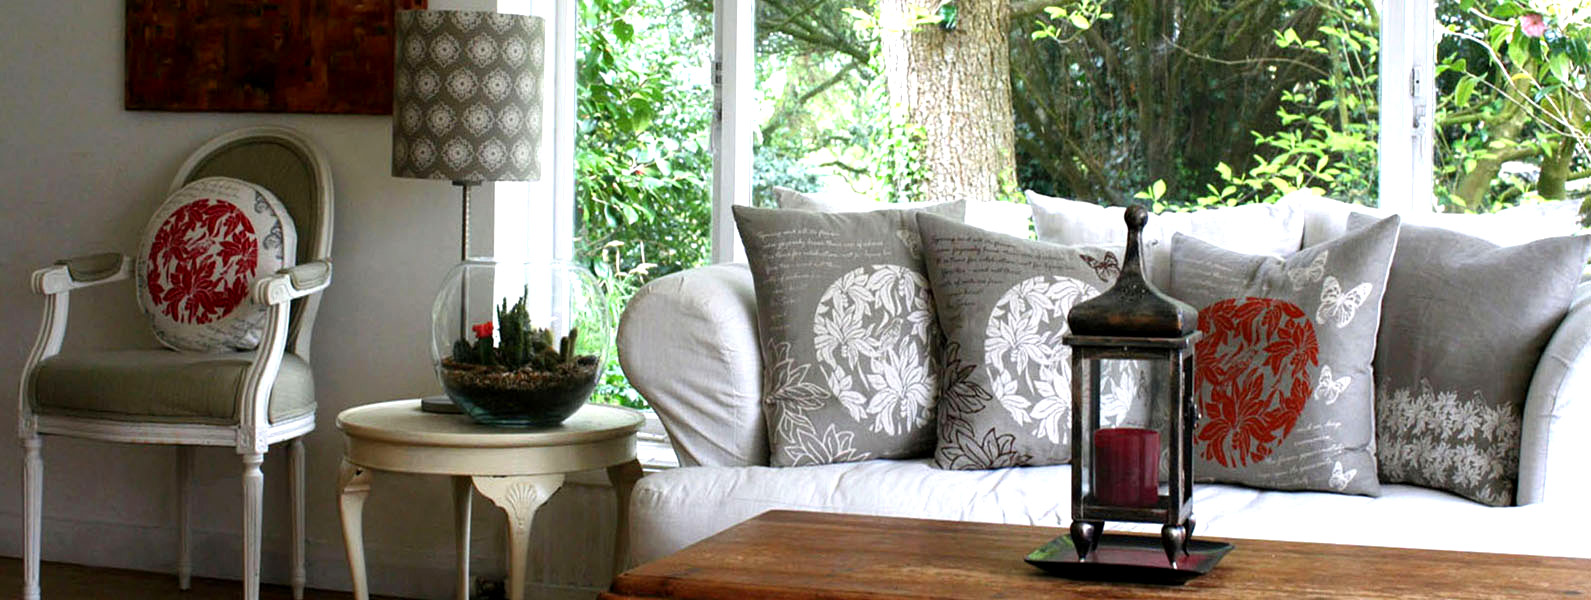 Country living room interior design and styling details by Moji Salehi at Moji Interiors in Hove.